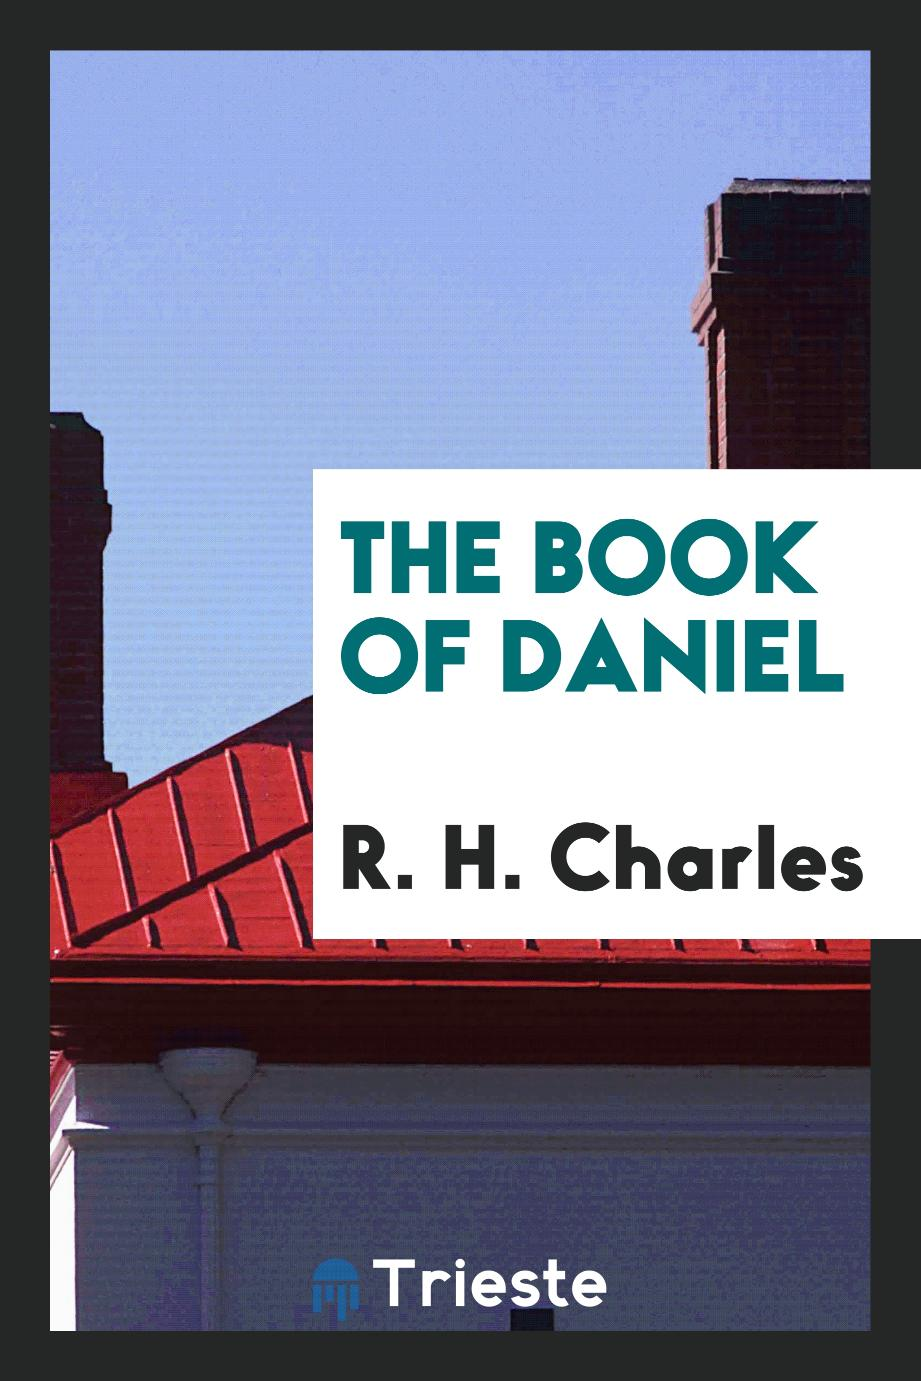 R. H. Charles - The Book of Daniel